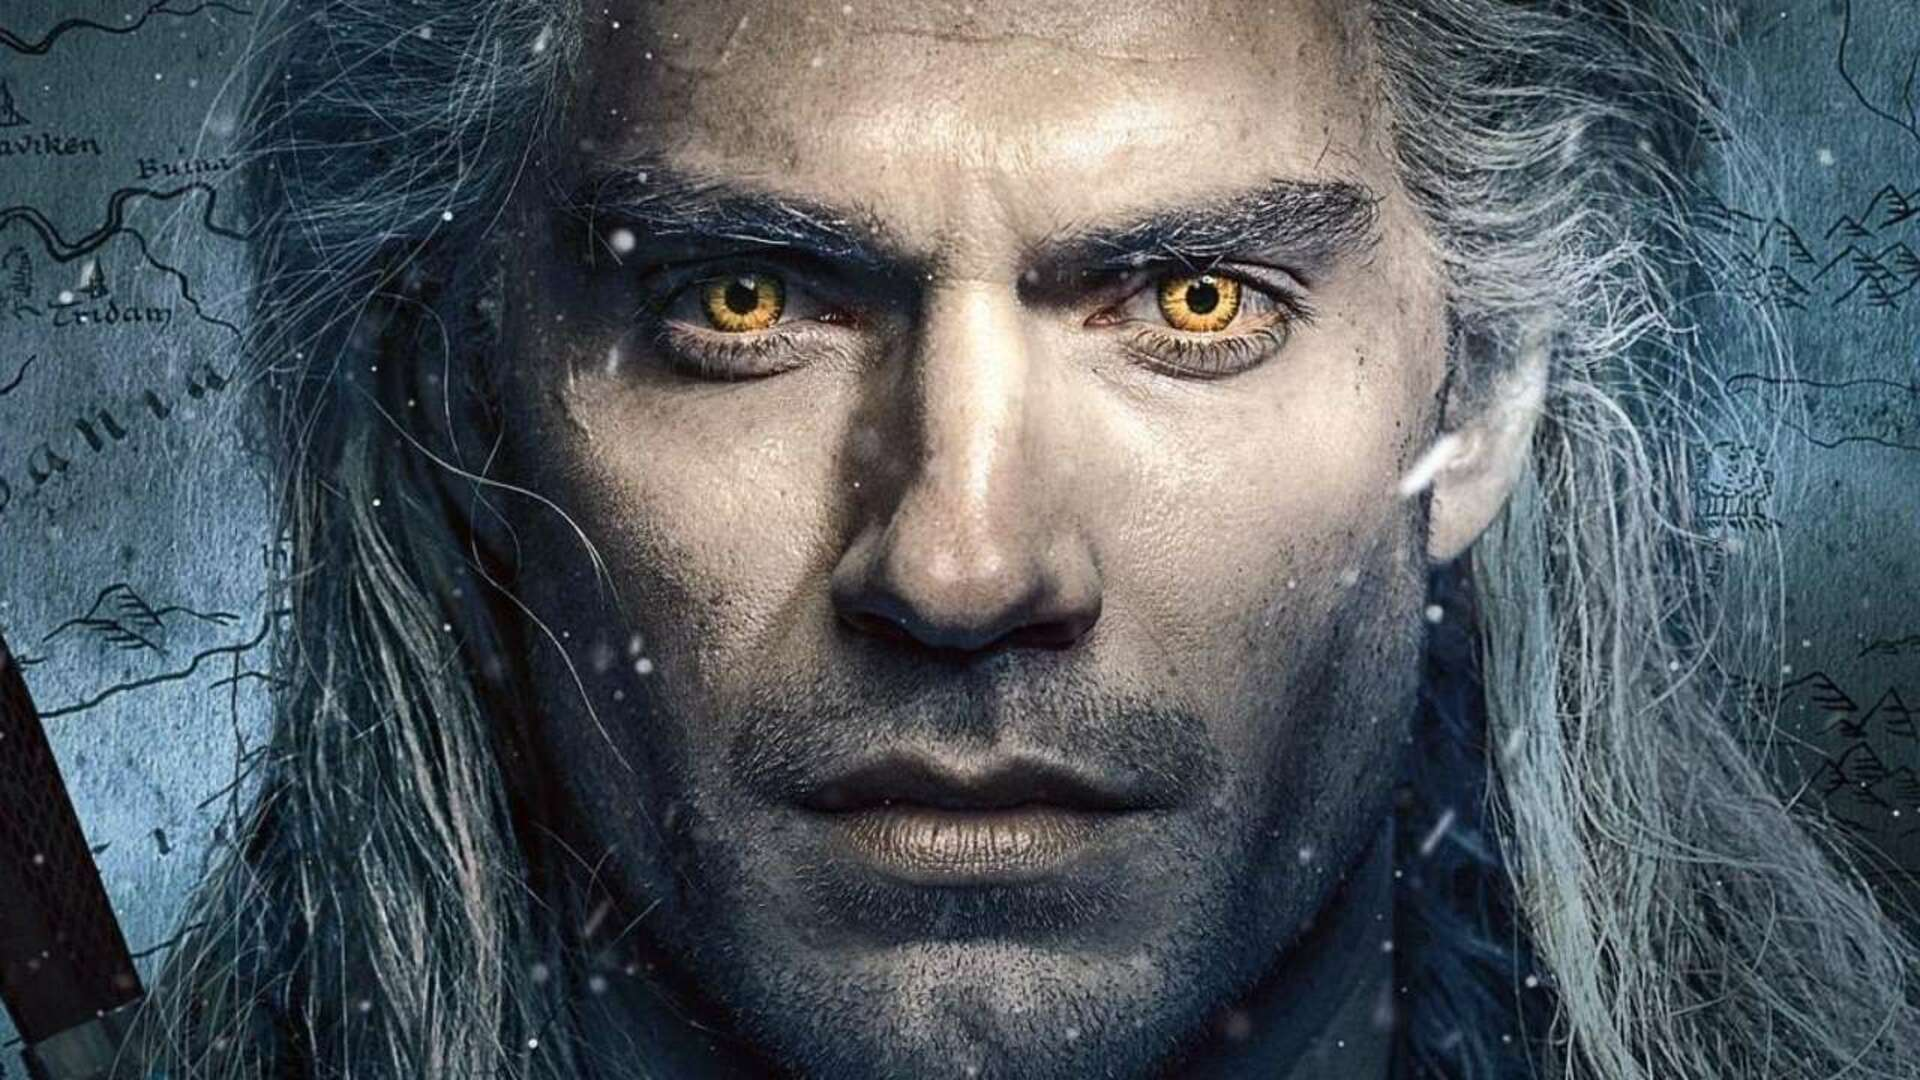 Report: The Witcher Season 2 is Trying to Restart Production in August